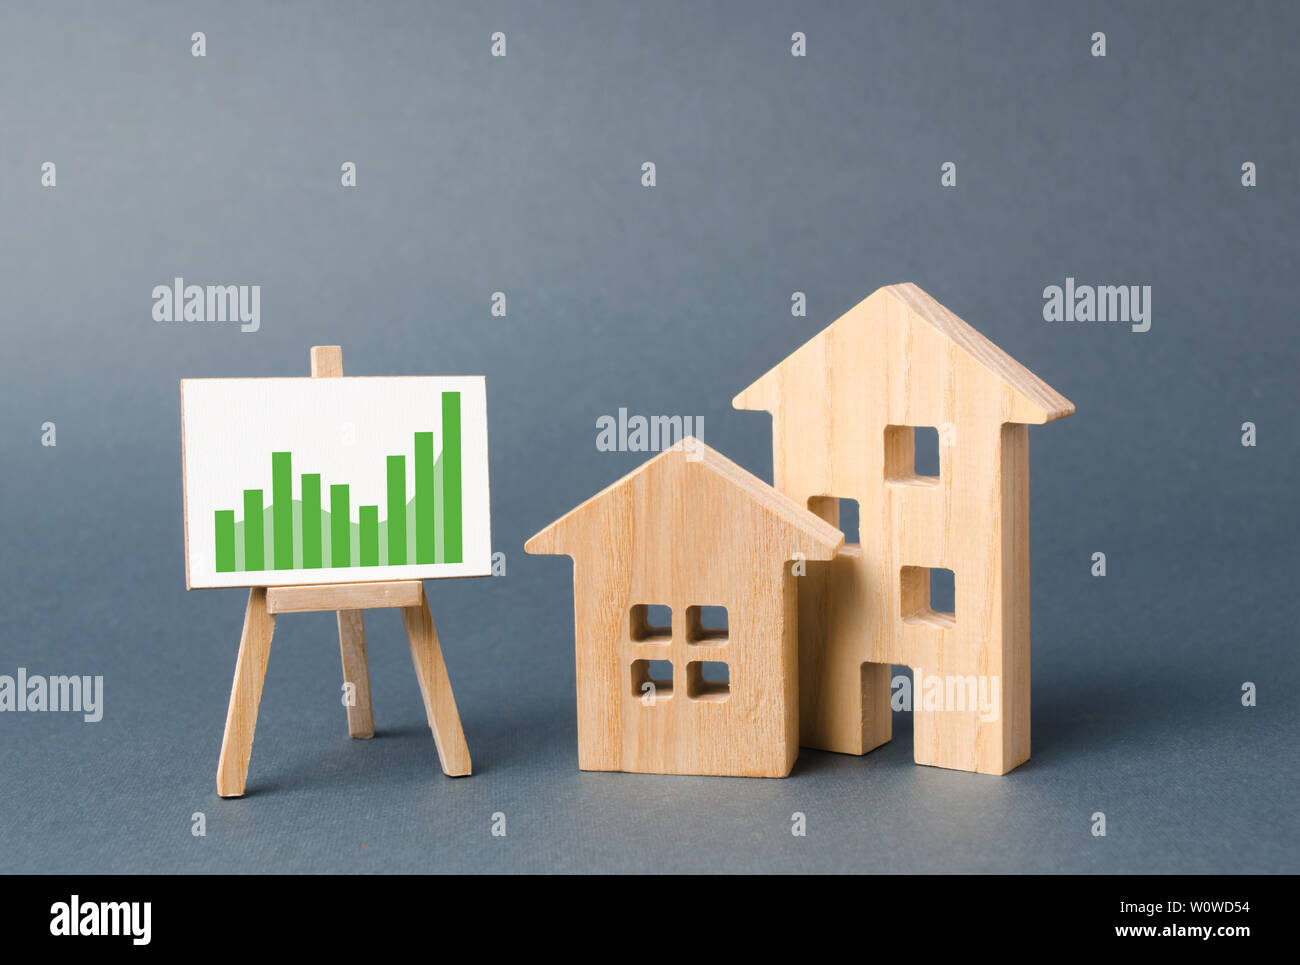 Wooden Figures Of Houses And A Poster With Information Charts With A